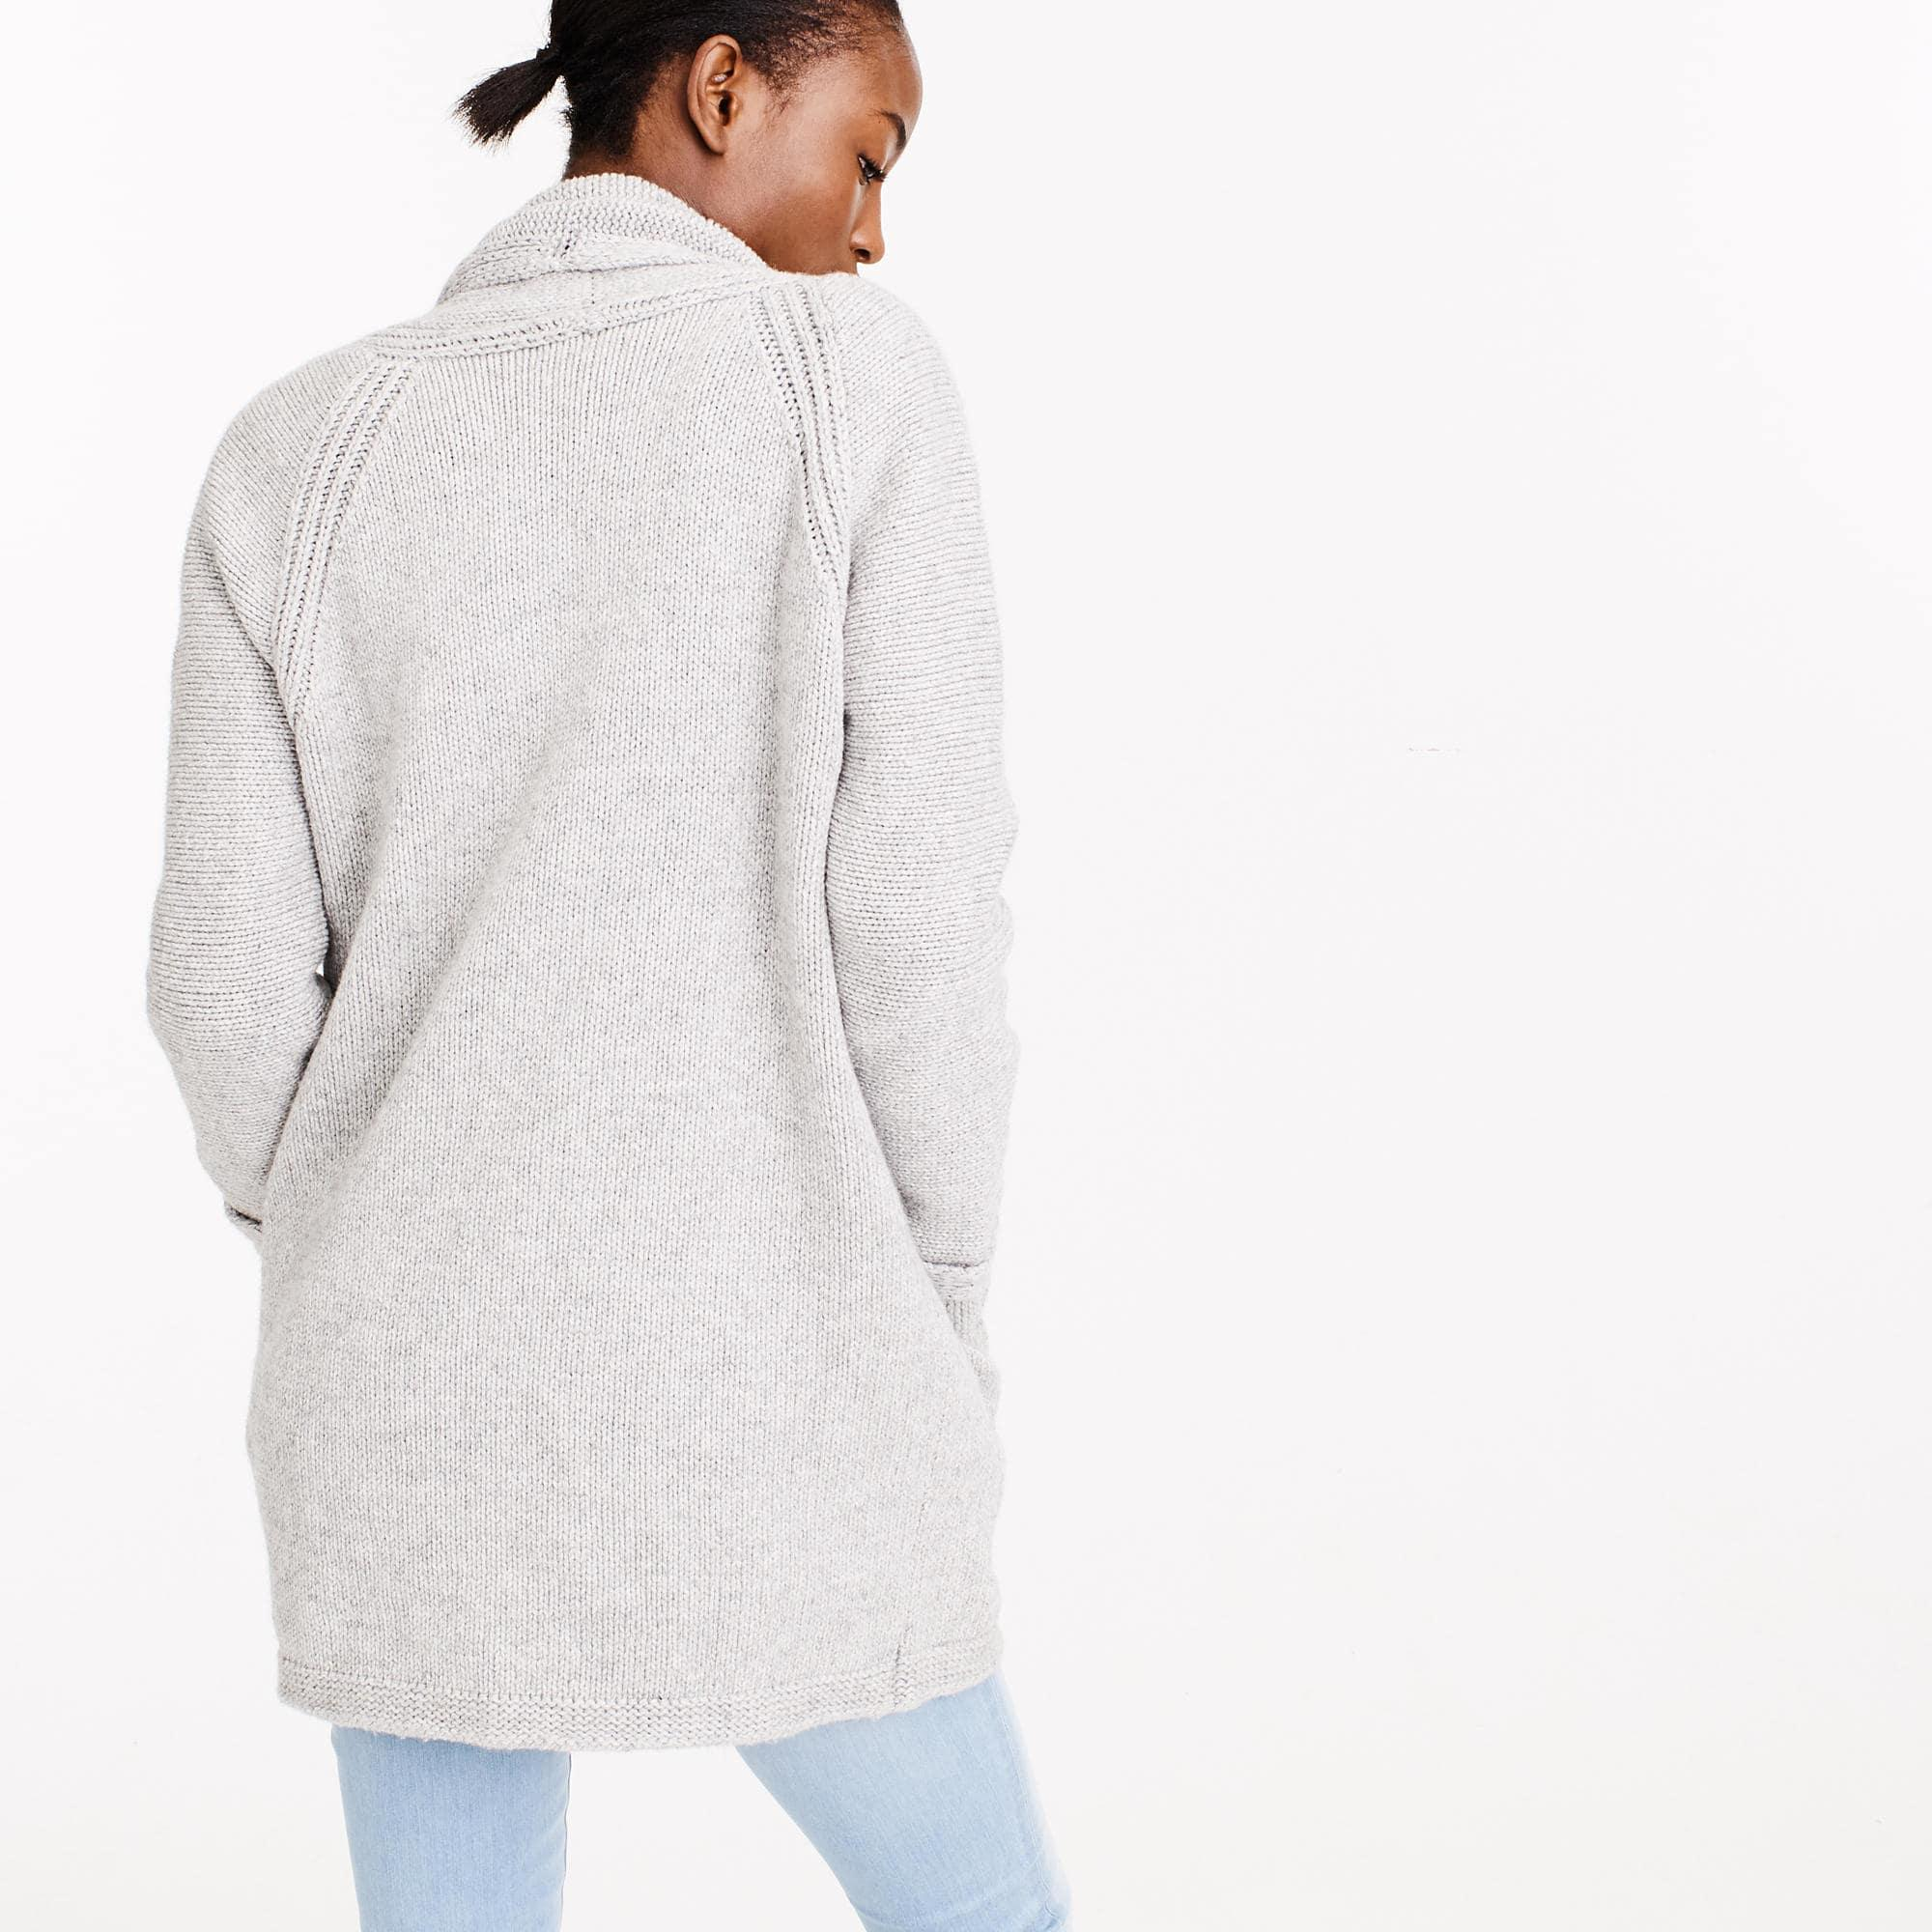 J.crew Long Open Cardigan Sweater | Lyst